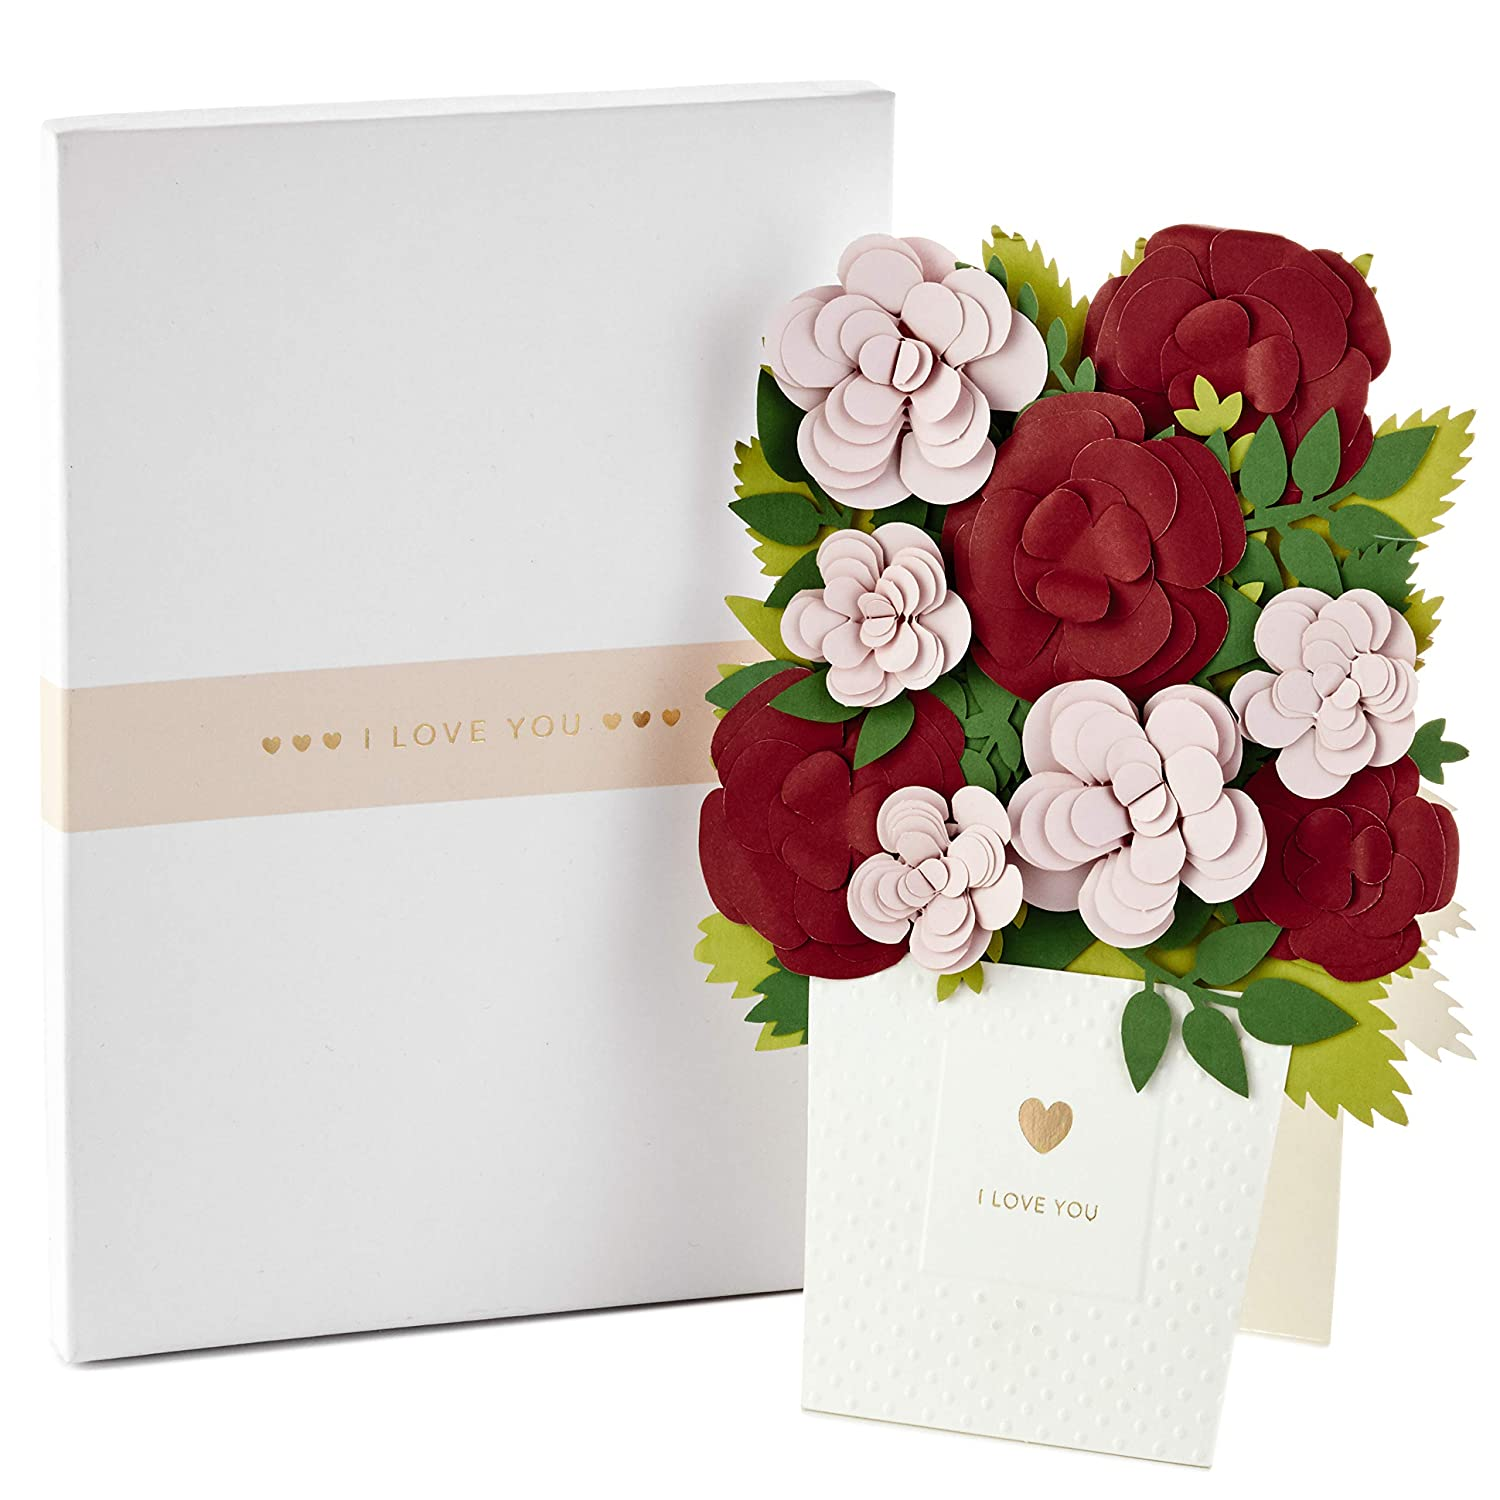 Hallmark Signature Paper Craft Flowers Displayable Bouquet Anniversary Card Or Love Card I Love You